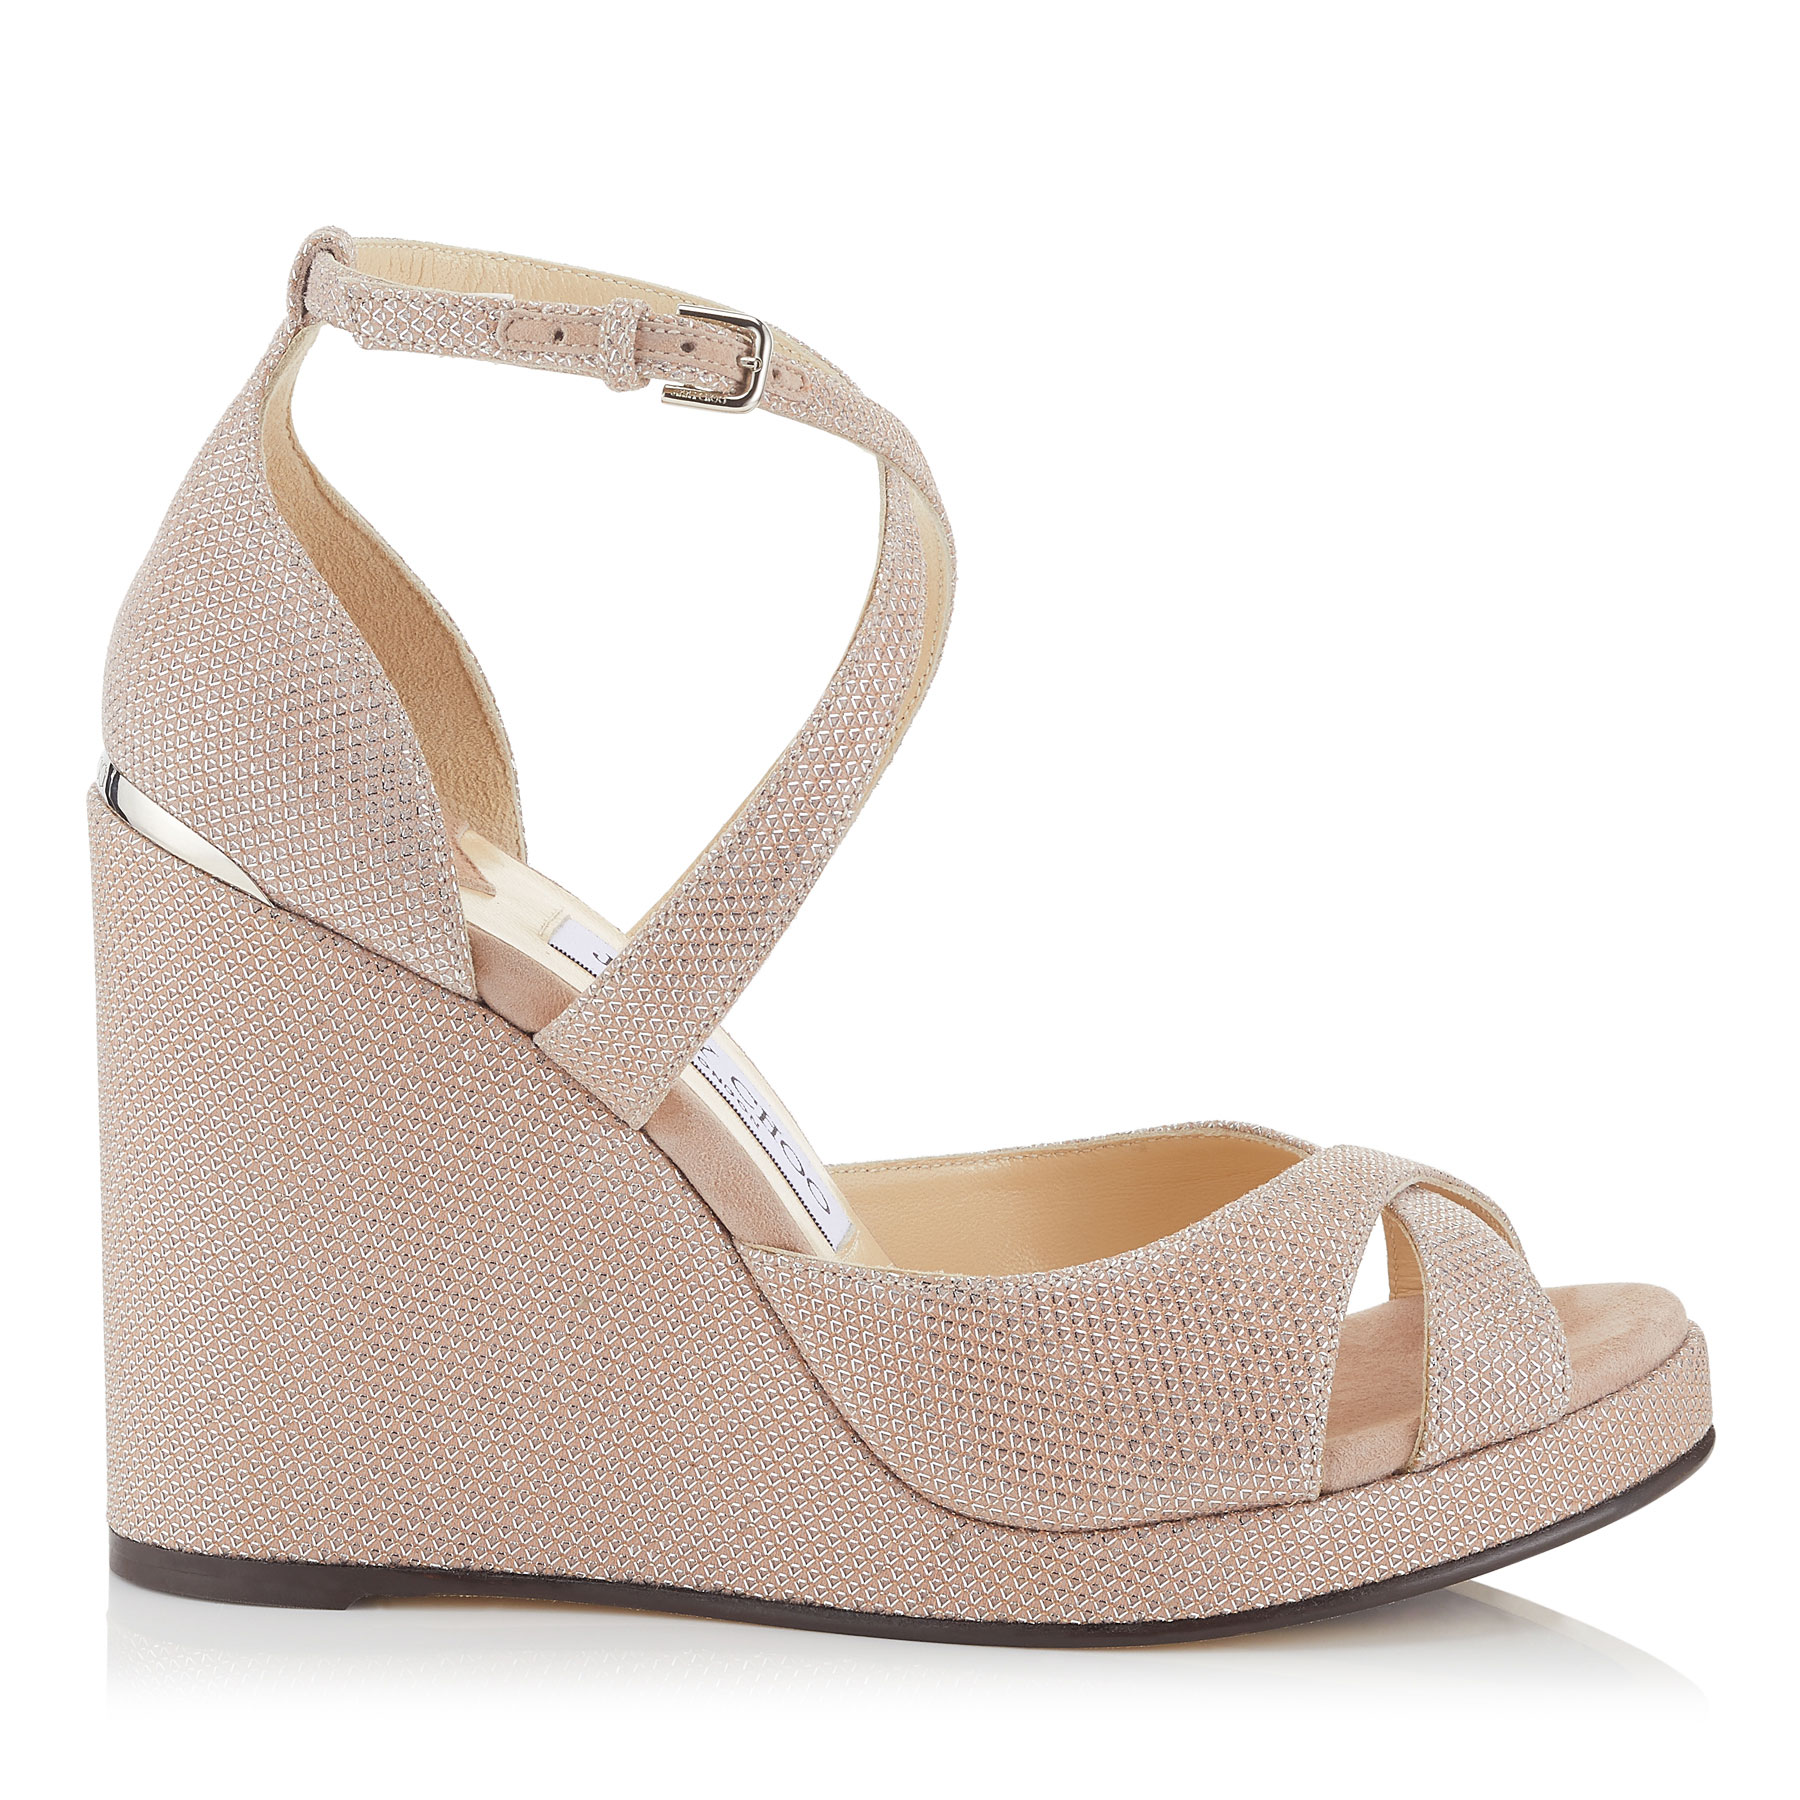 ALANAH 105 Ballet Pink Glitter Mesh on Suede Wedges by Jimmy Choo